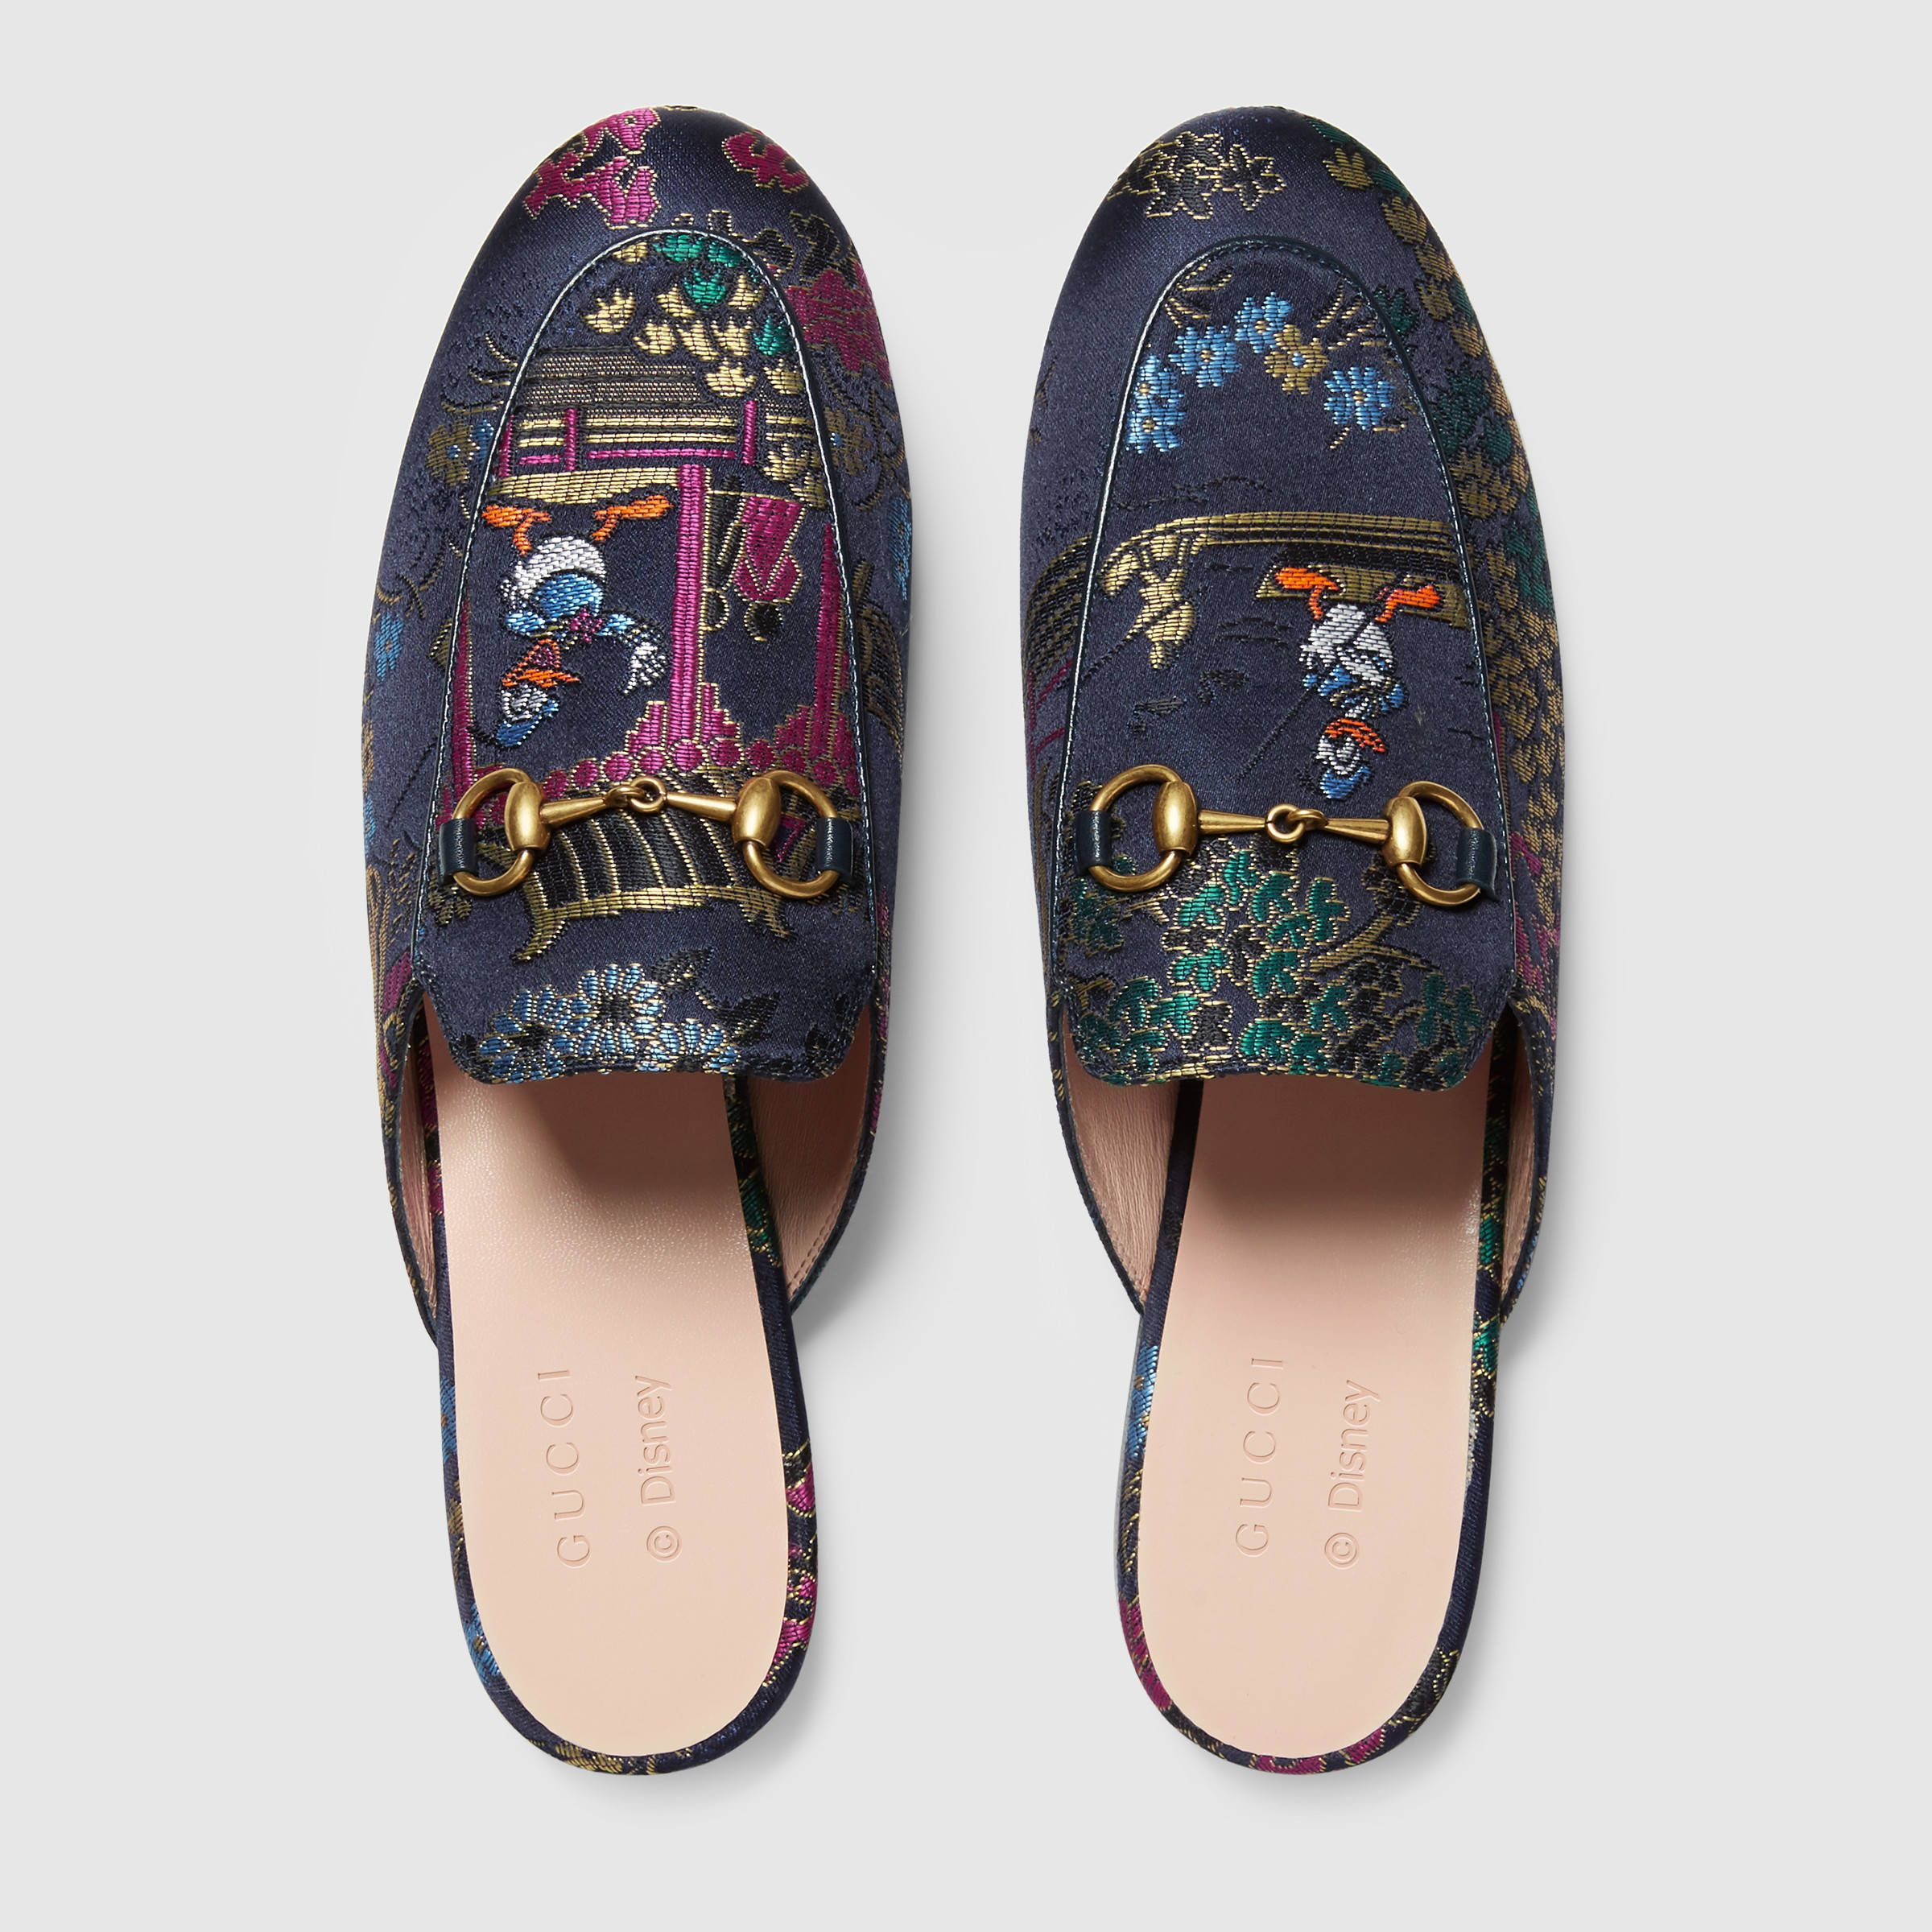 4eb8c002ec1 Princetown jacquard slipper with Donald Duck - Gucci Women s Moccasins    Loafers 423514K8M604374